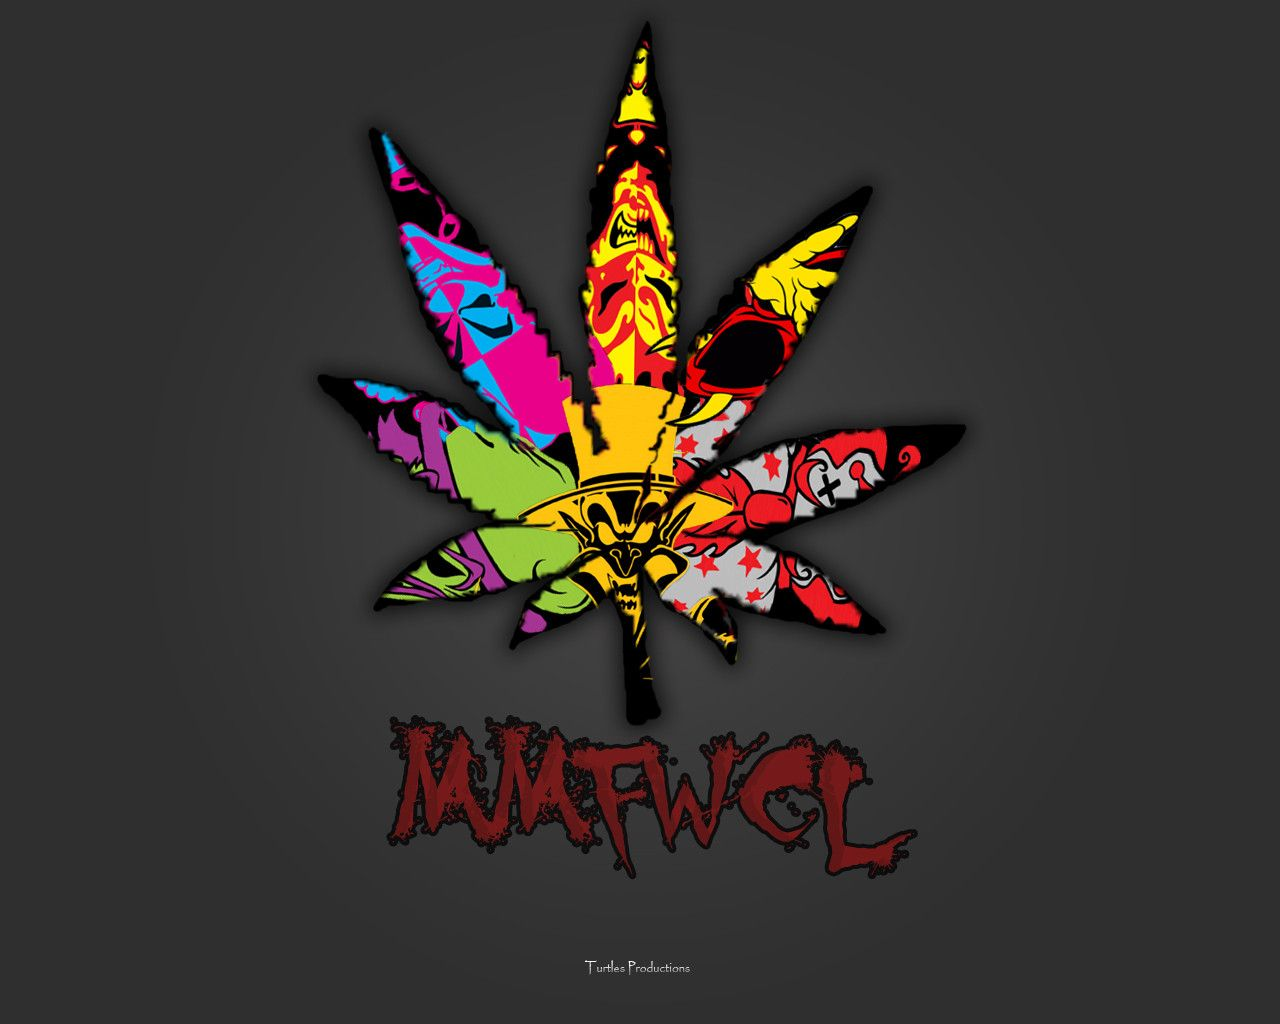 Juggalo Wallpapers 104668 High Definition Suwall 1280x1024